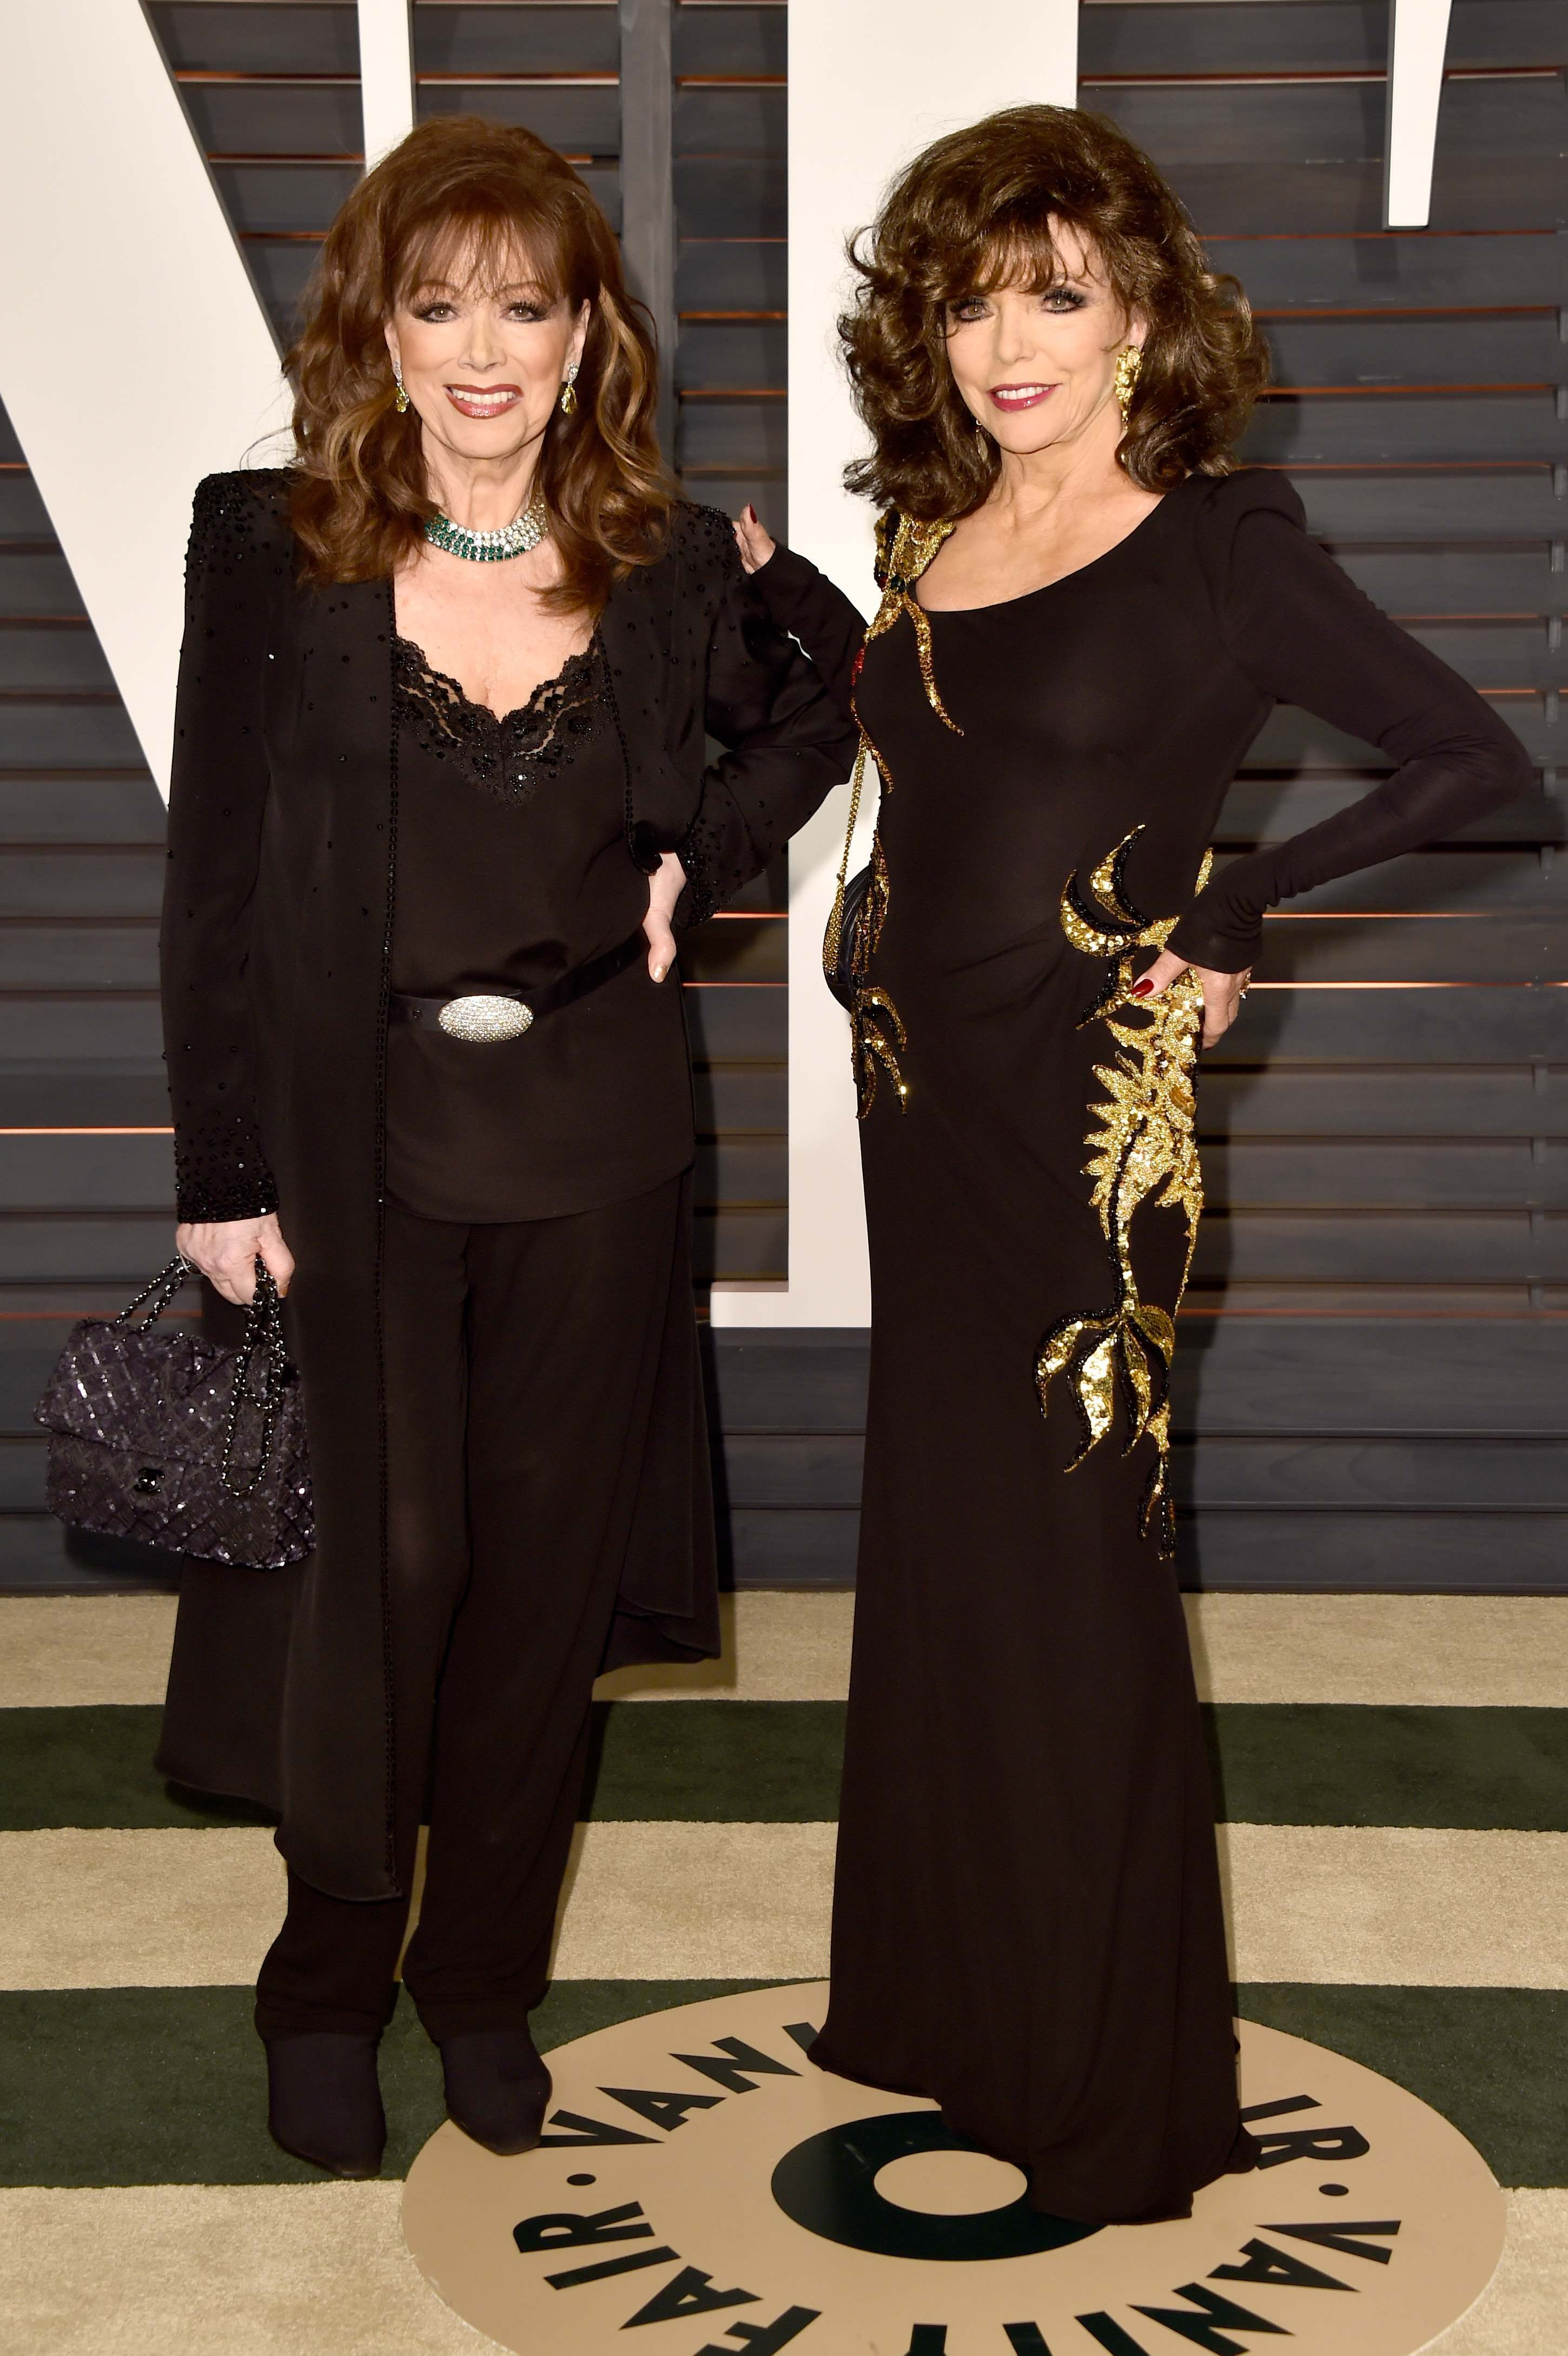 BEVERLY HILLS, CA - FEBRUARY 22:  Producer Jackie Collins (L) and actress Joan Collins attend the 2015 Vanity Fair Oscar Party hosted by Graydon Carter at Wallis Annenberg Center for the Performing Arts on February 22, 2015 in Beverly Hills, California.  (Photo by Pascal Le Segretain/Getty Images)